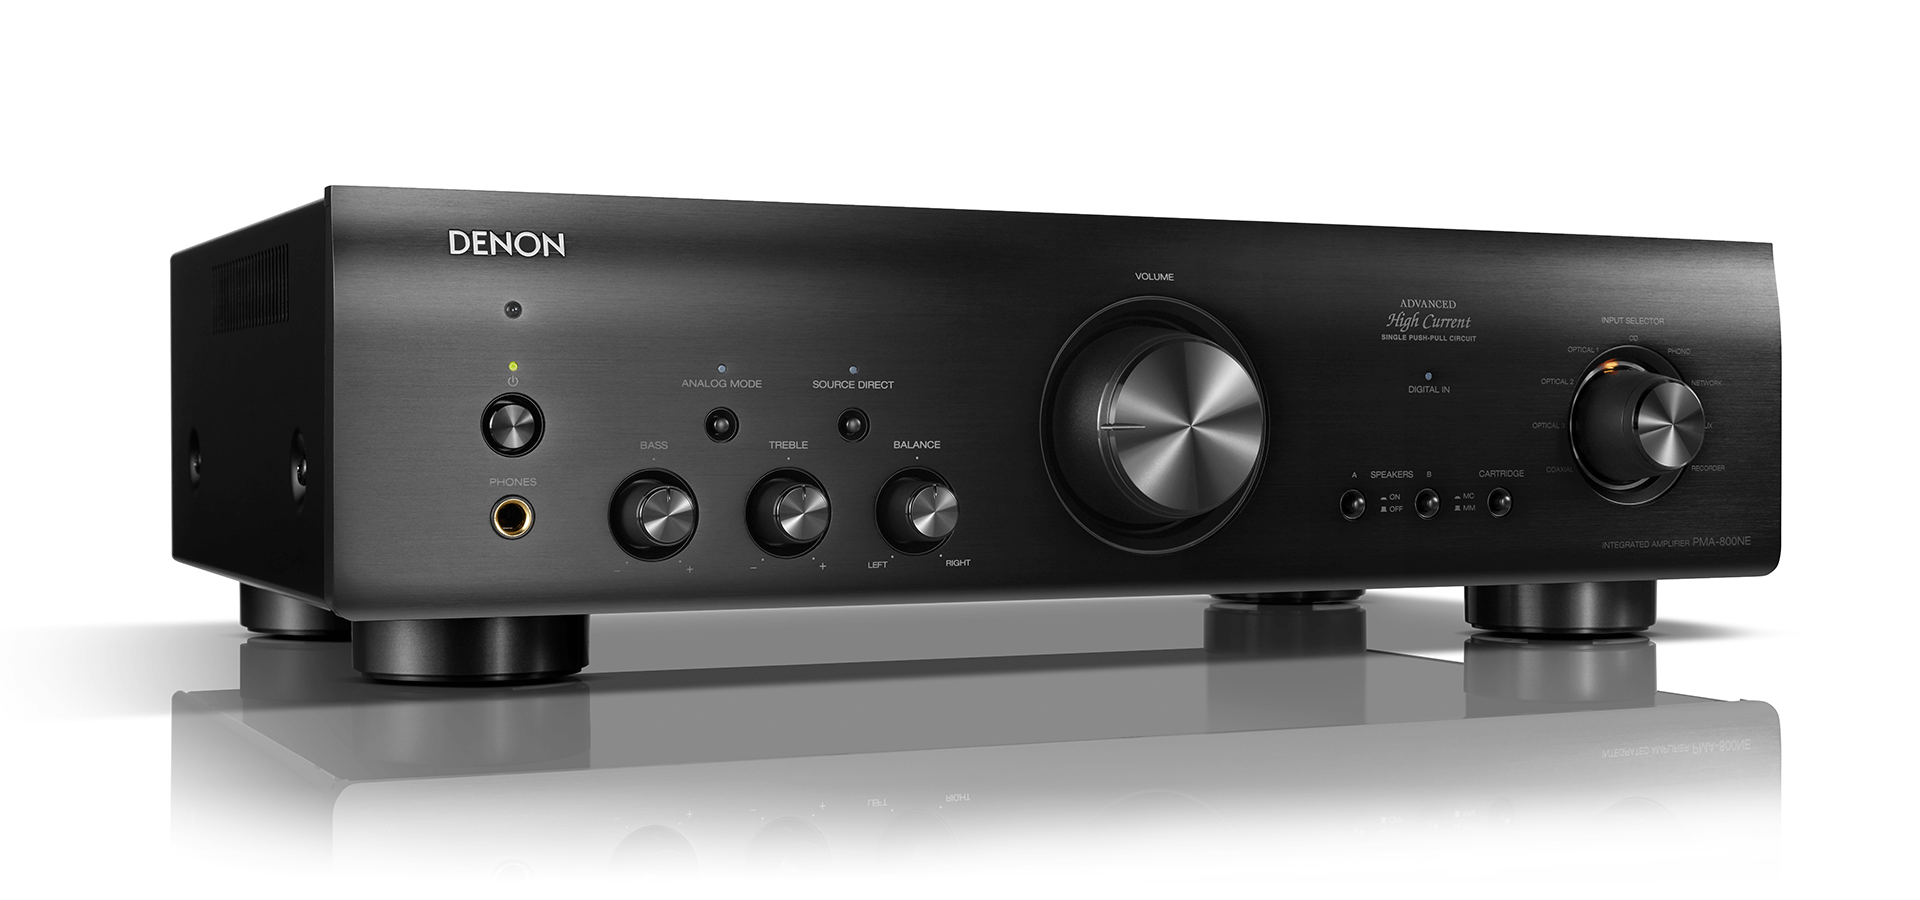 Denon Pma 800ne Stereo Amplifier Melbourne Hi Fi Equalizer Circuit The Integrated Sets New Heights In Premium Audio Performance With Digital Inputs And A Built Phono